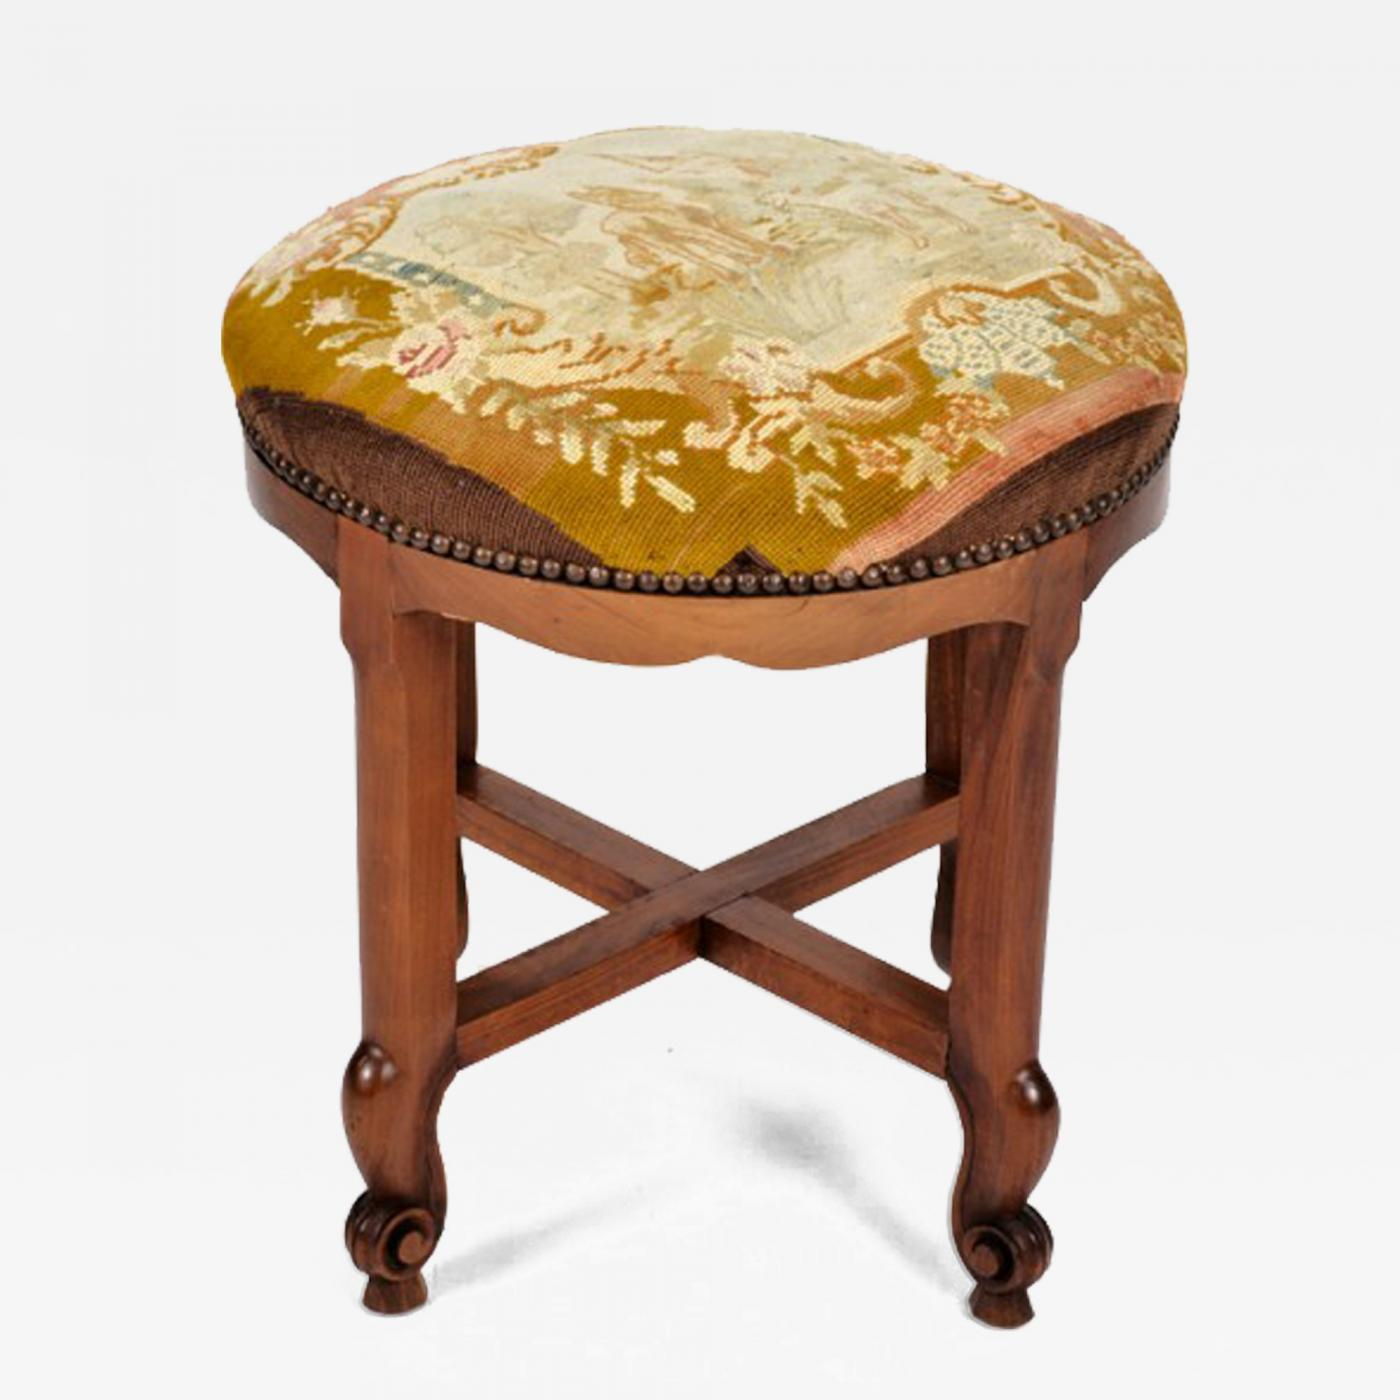 Listings / Furniture / Seating / Stools · Antique Vanity ... - Antique Vanity Stool - Vanity Bench, Louis XV - Country French Style